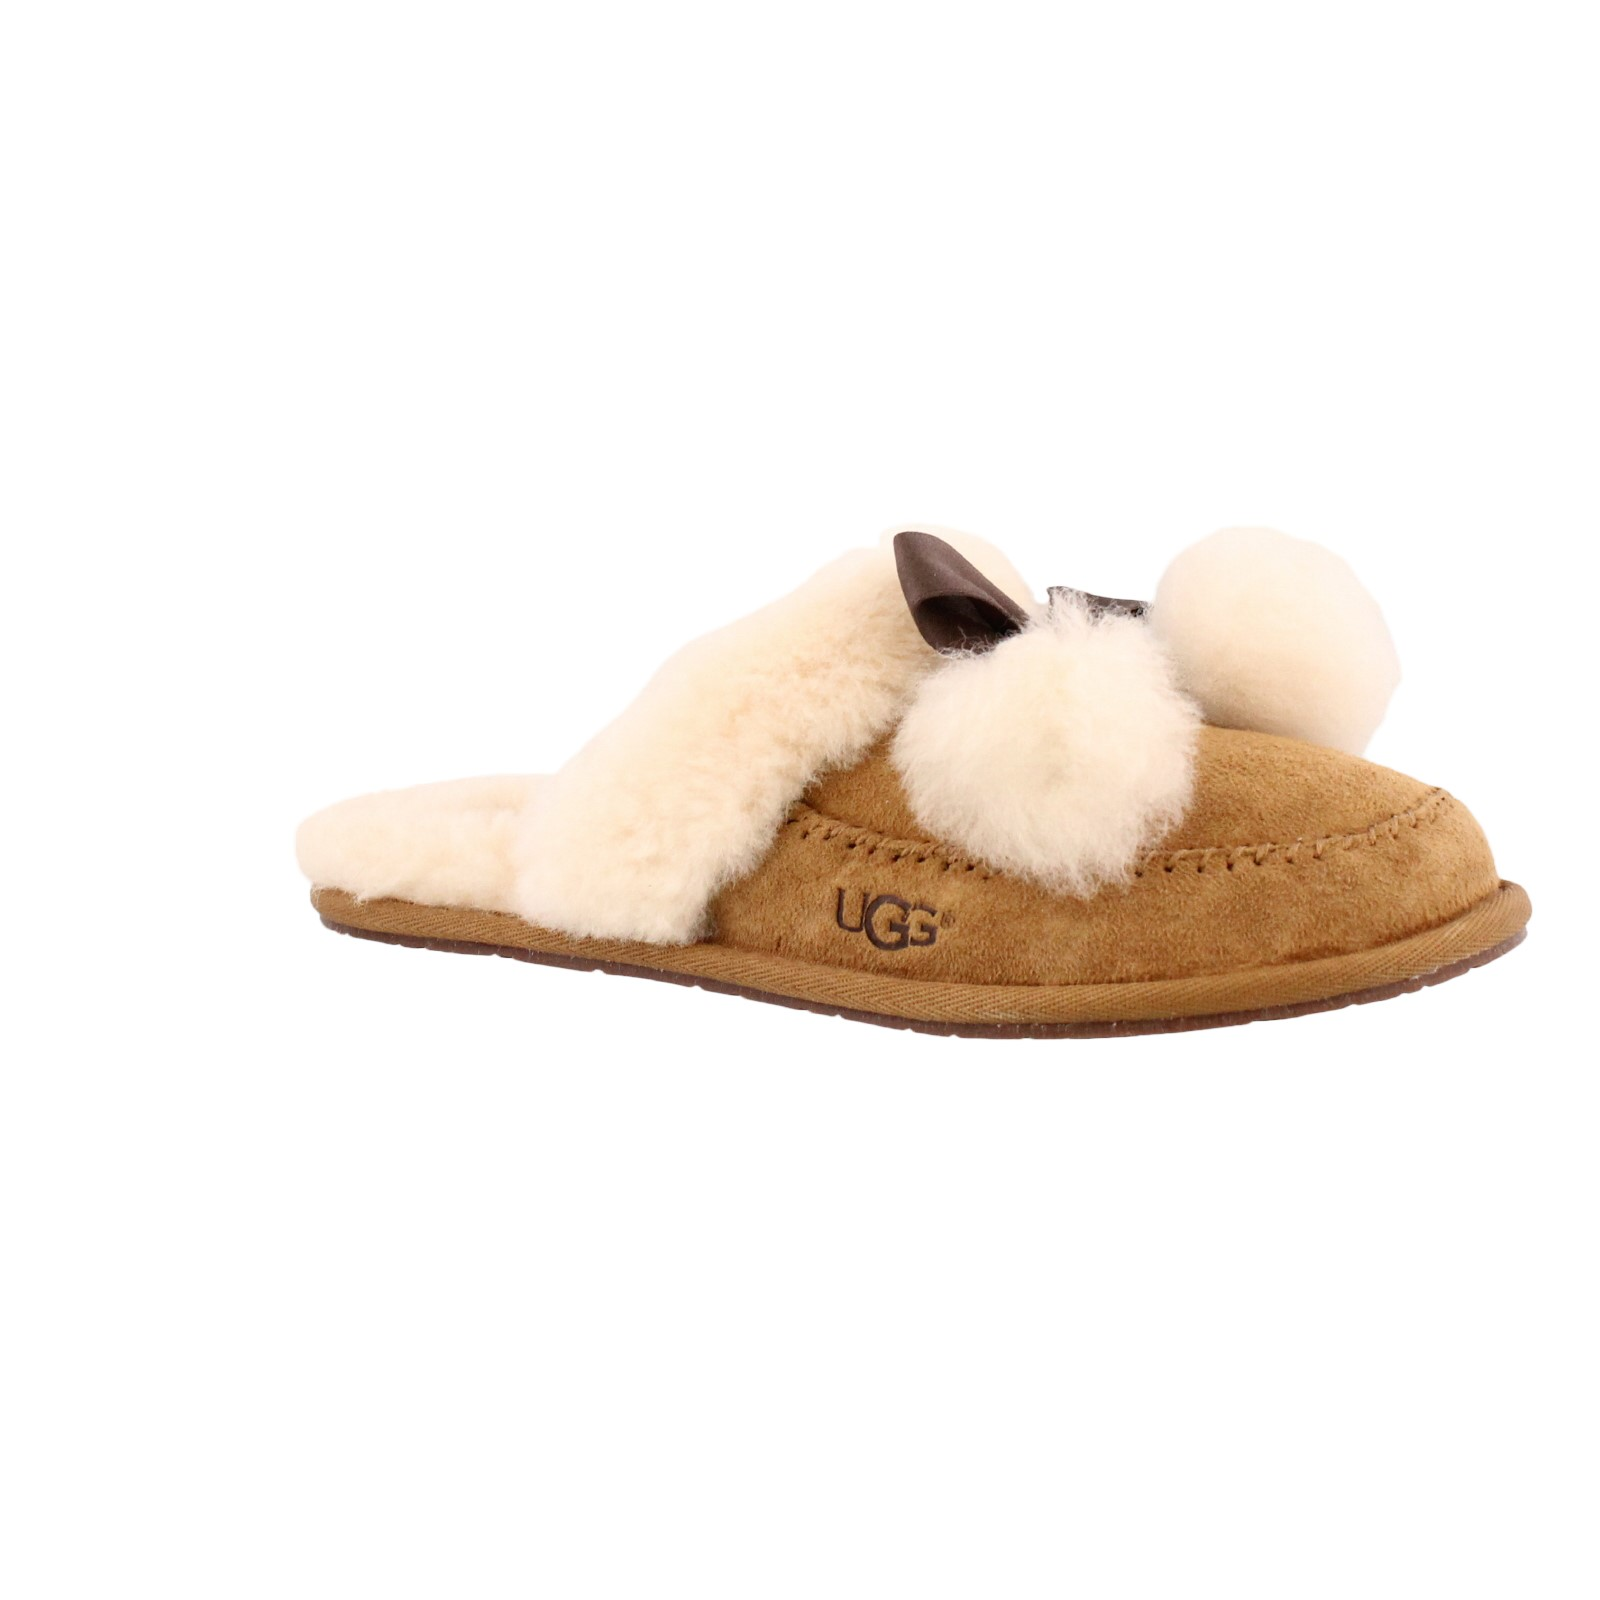 482550aaf41 Women's Ugg, Hafnir Slipper